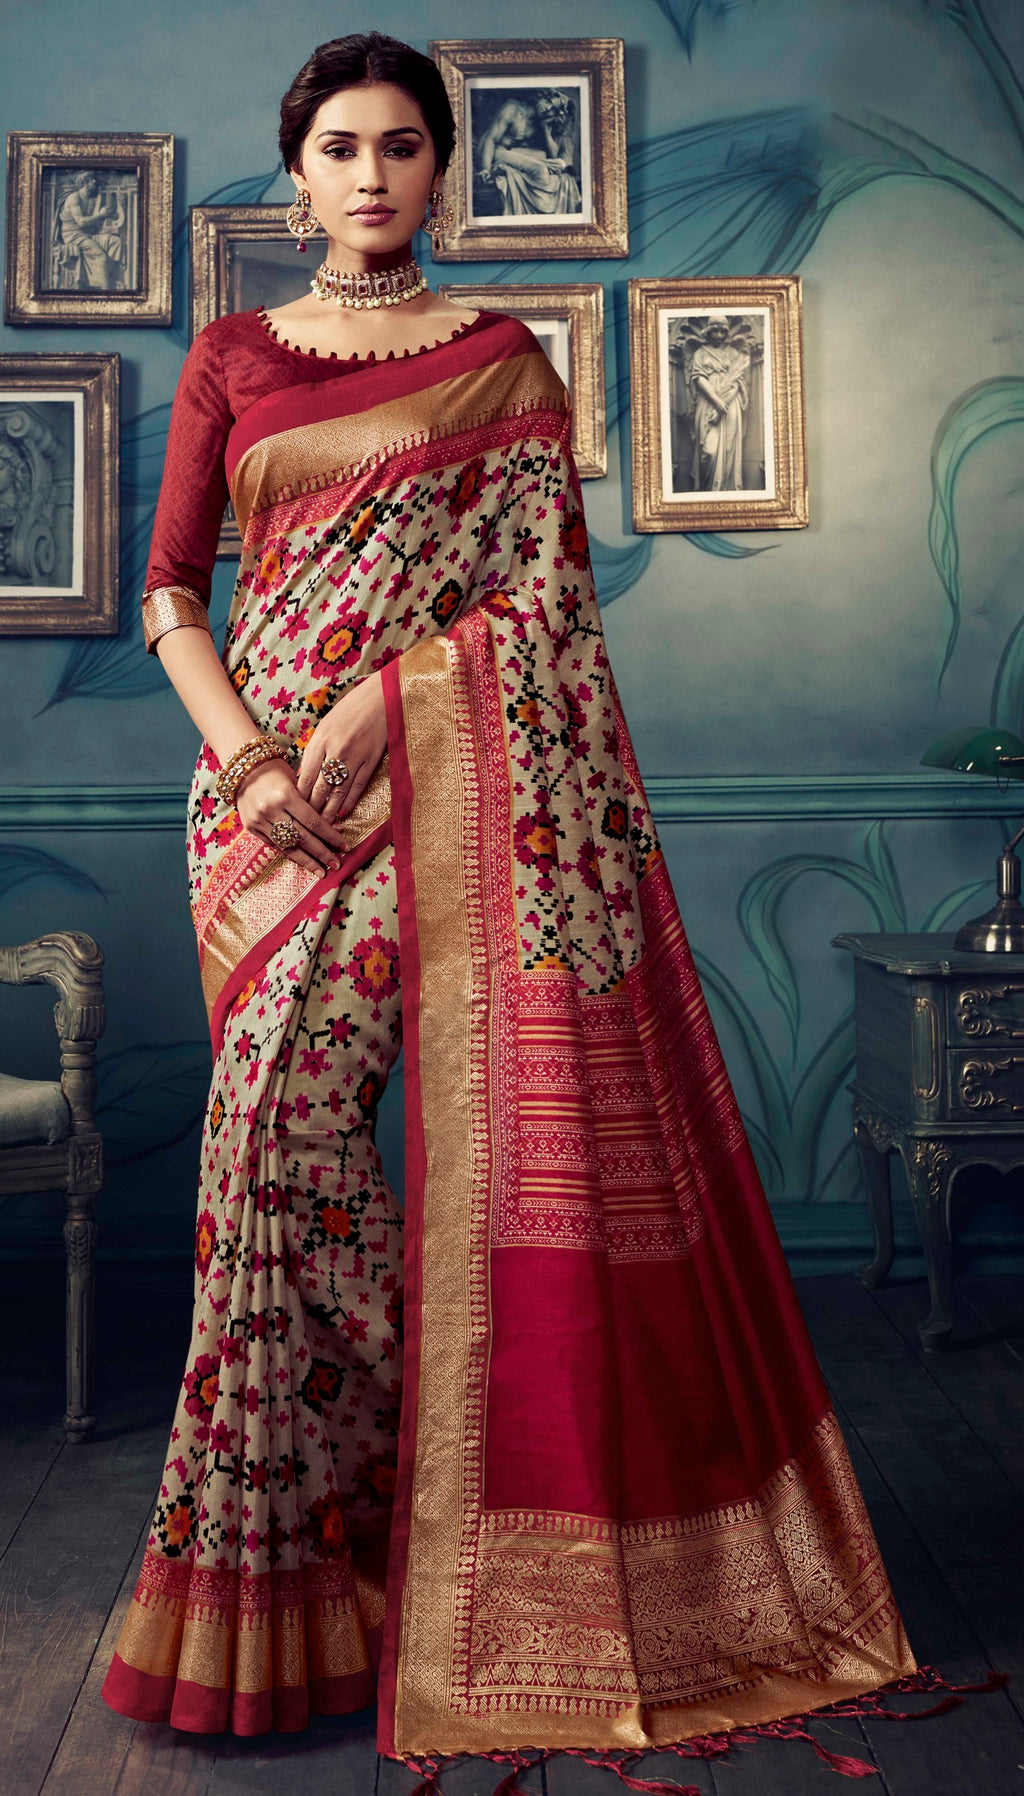 Off White & Maroon Color Bhagalpuri Festive & Party Wear Sarees NYF-8622